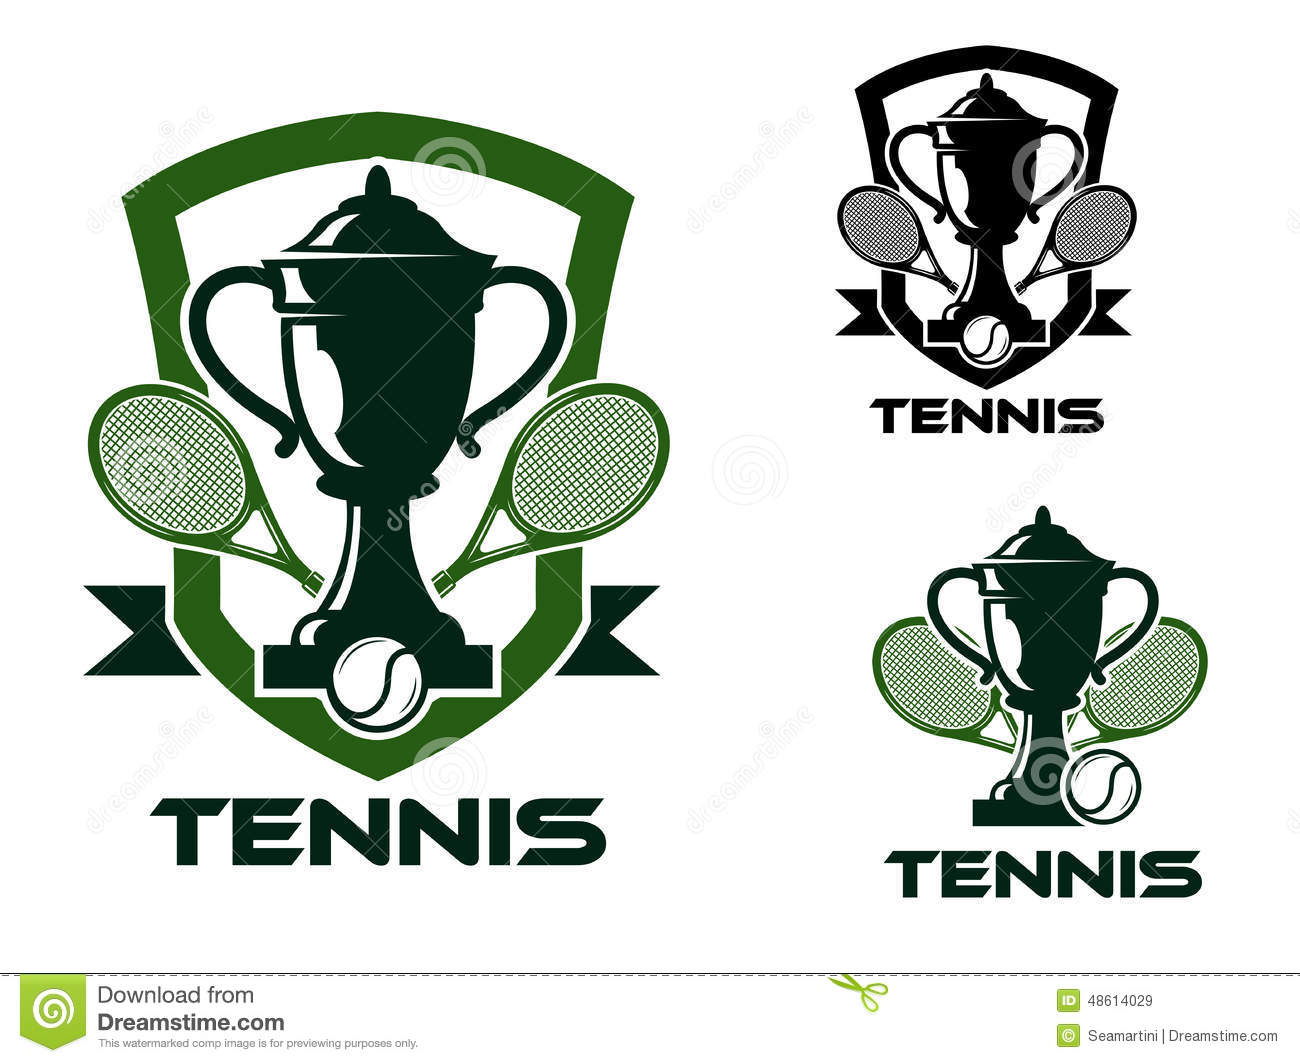 ... , balls, trophy cups and ribbon banners in green and black colors